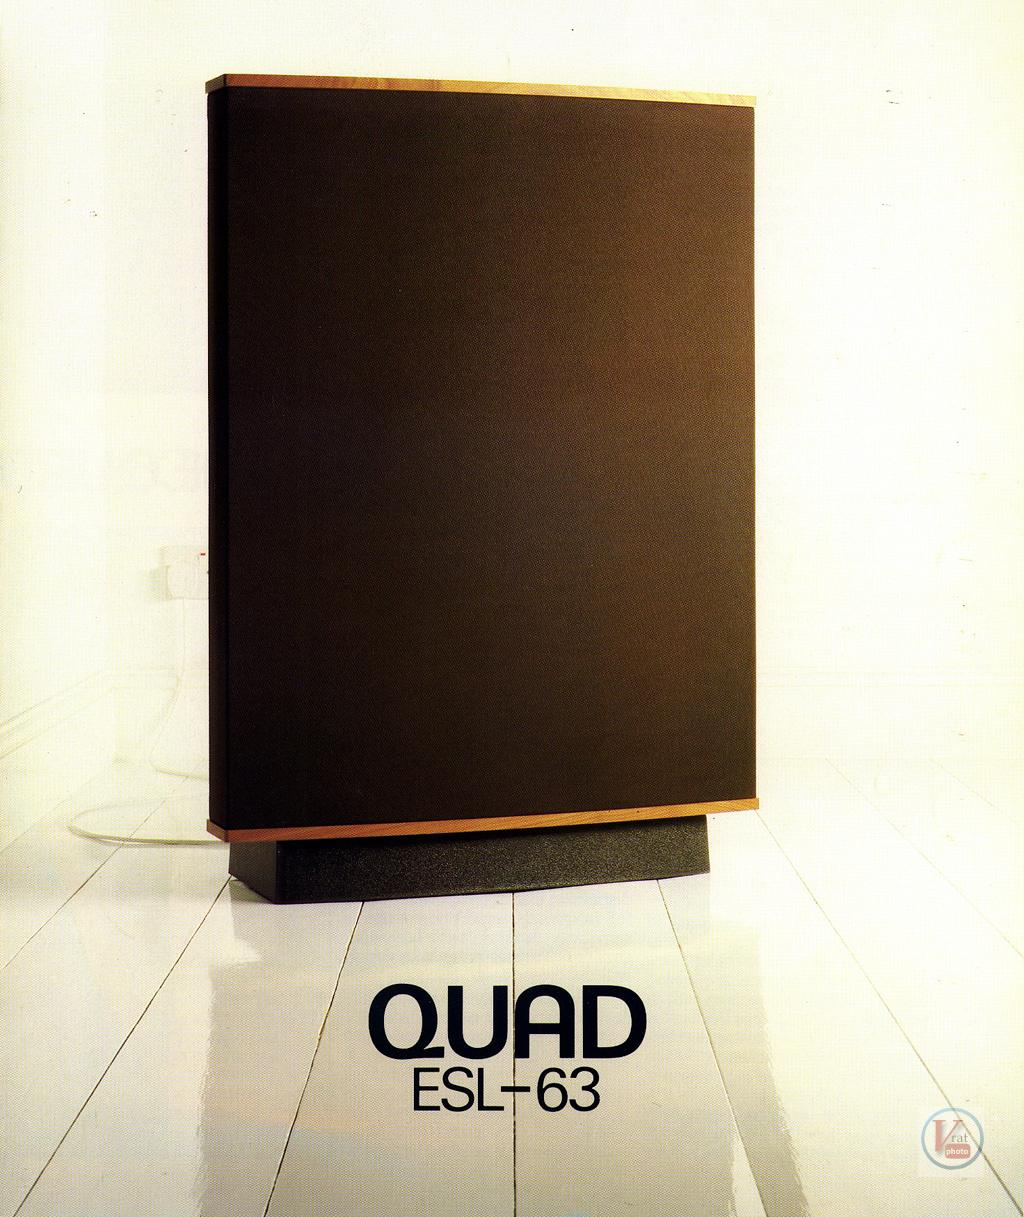 Quad Speakers 86